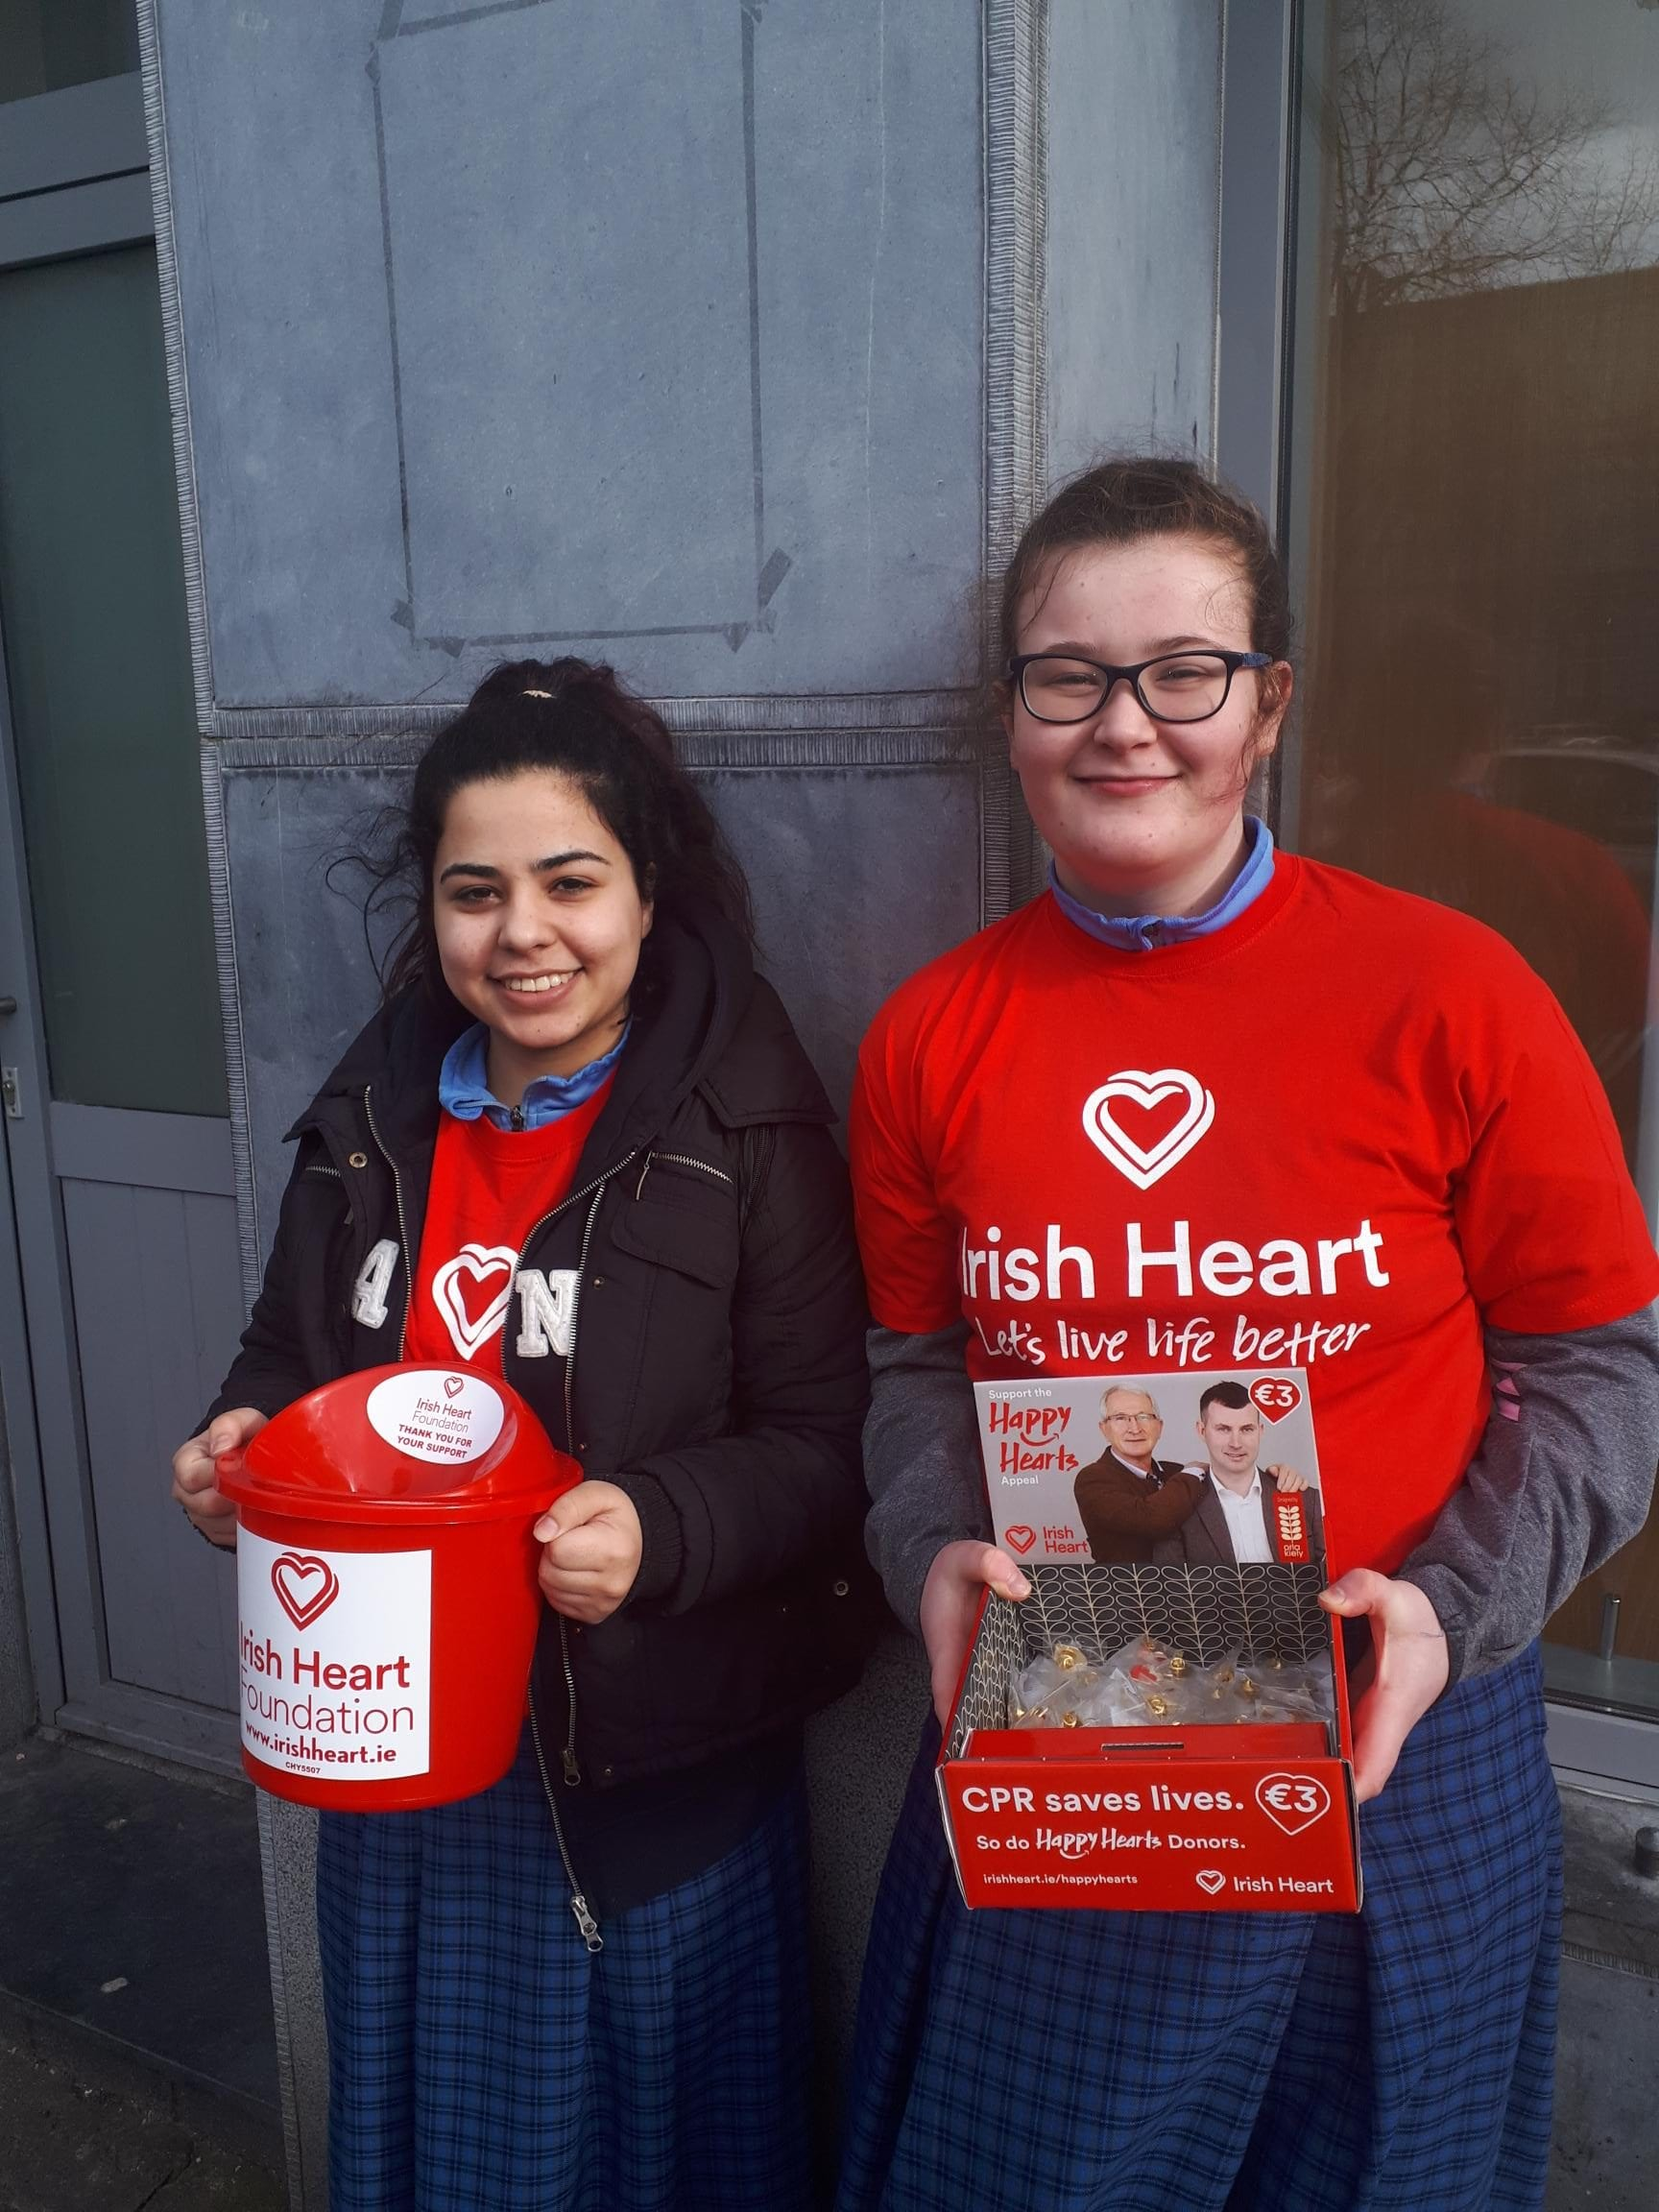 Anna Da Silva and Alanis Leen fundraising for the Irish Heart Foundation